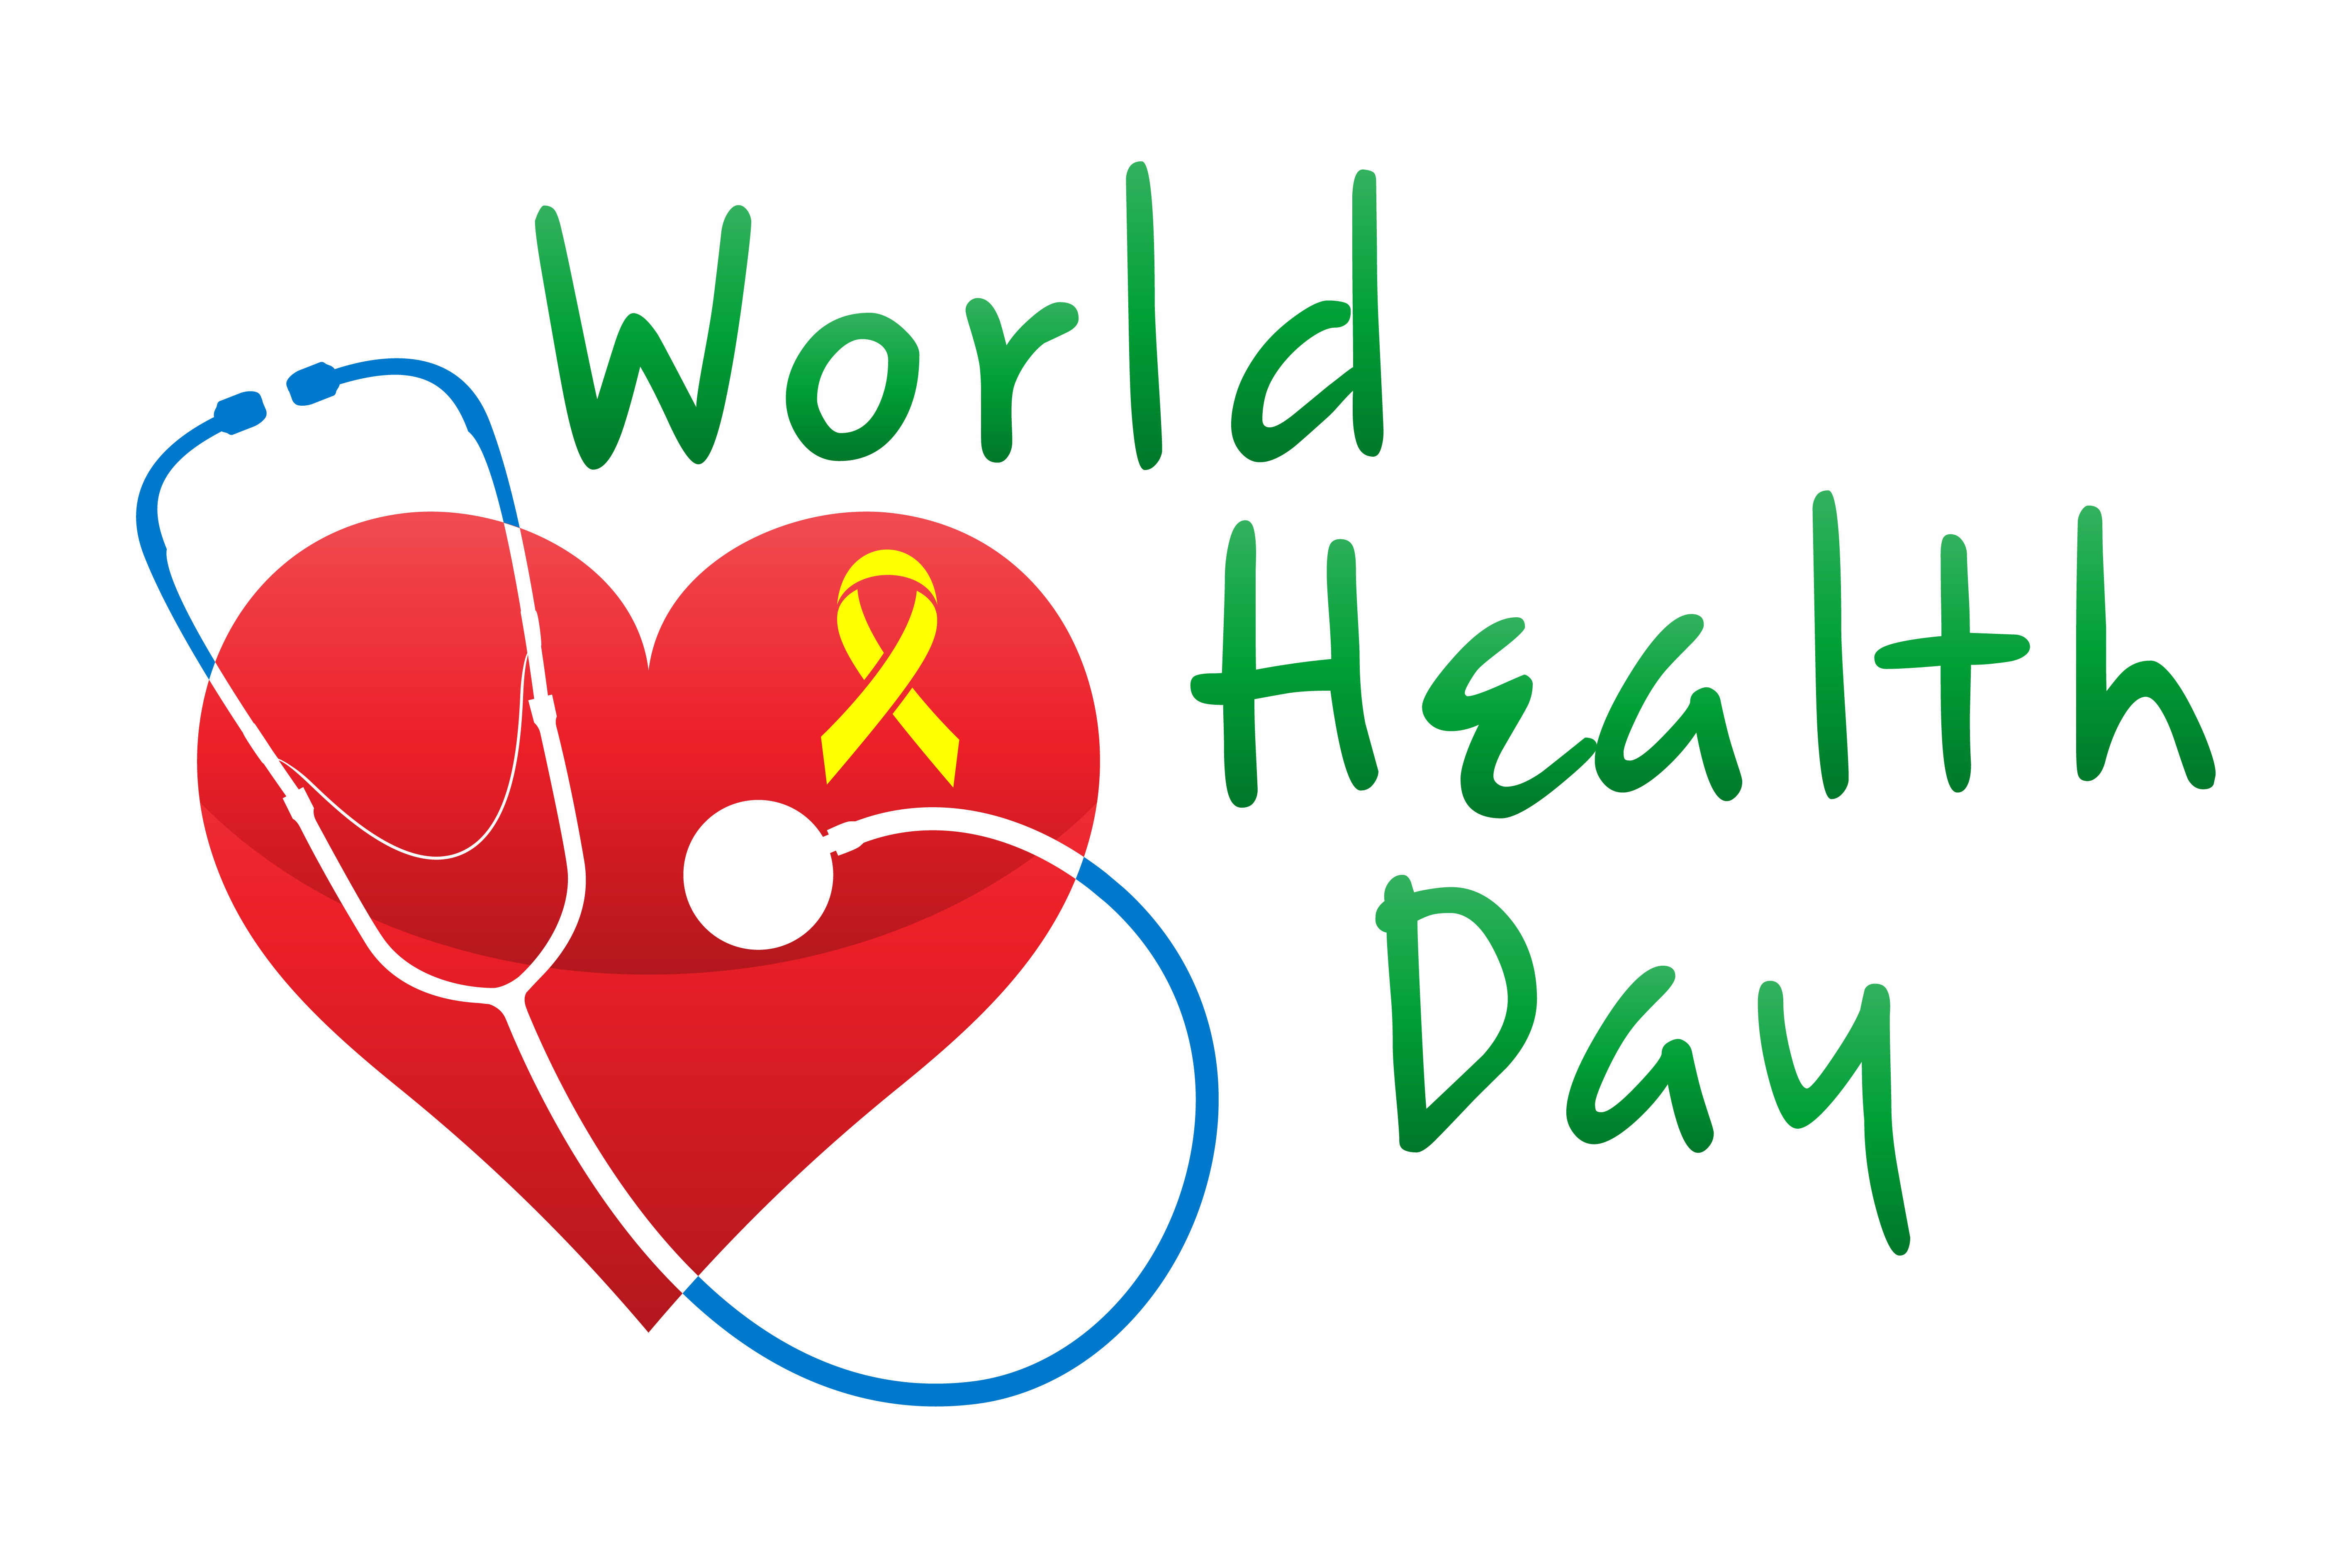 world health day logo text banner vector illustration ...